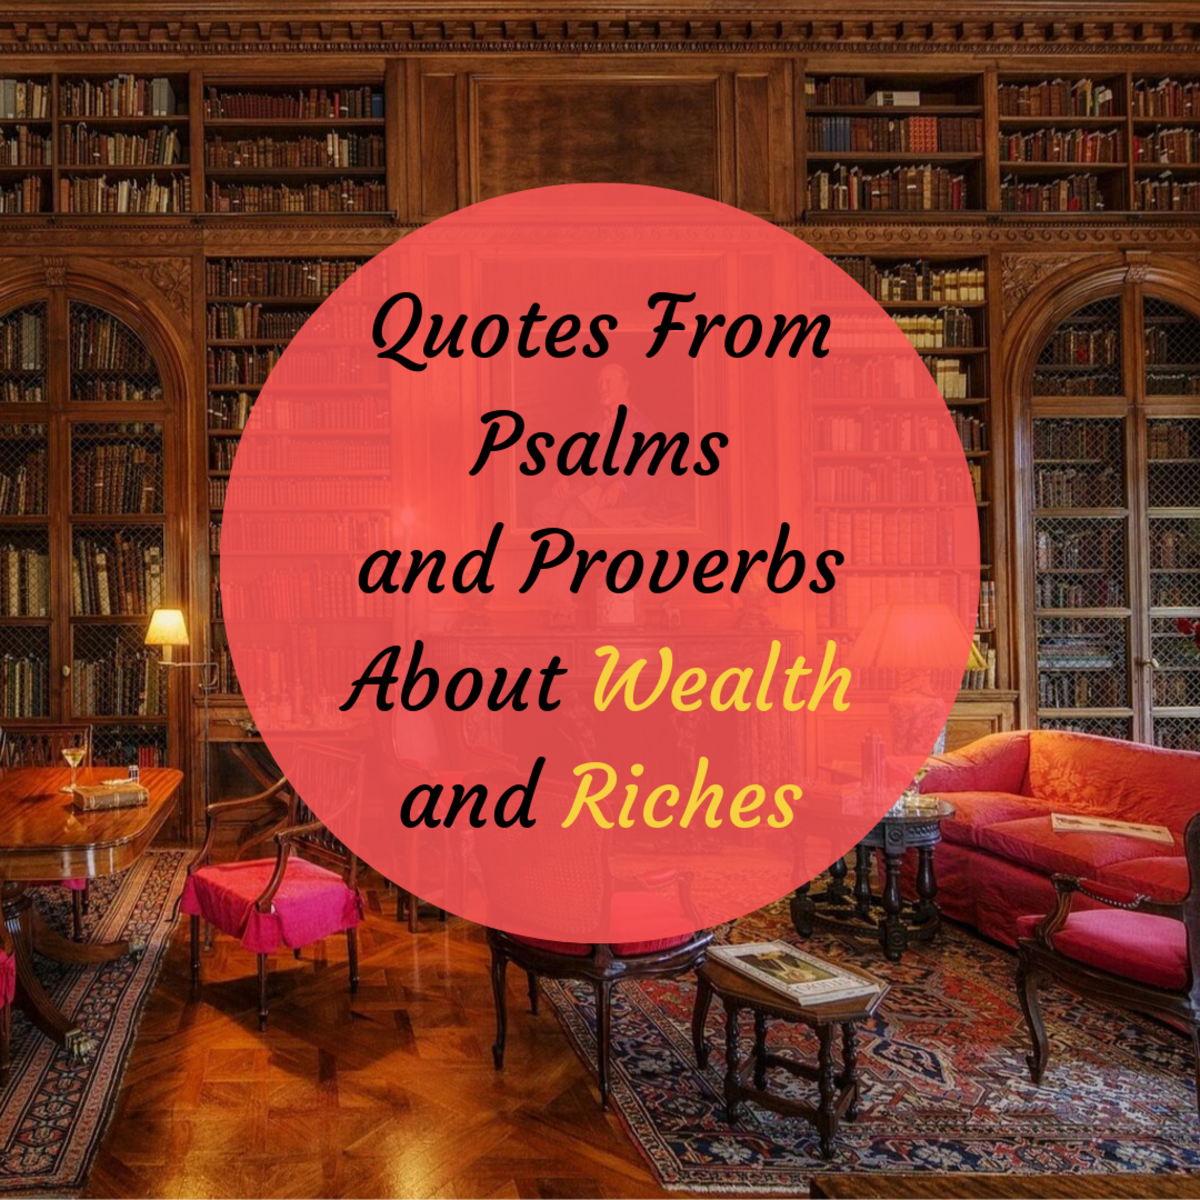 Discover some quotes related to wealth and becoming wealthy from the Book of Psalms and the Book of Proverbs.